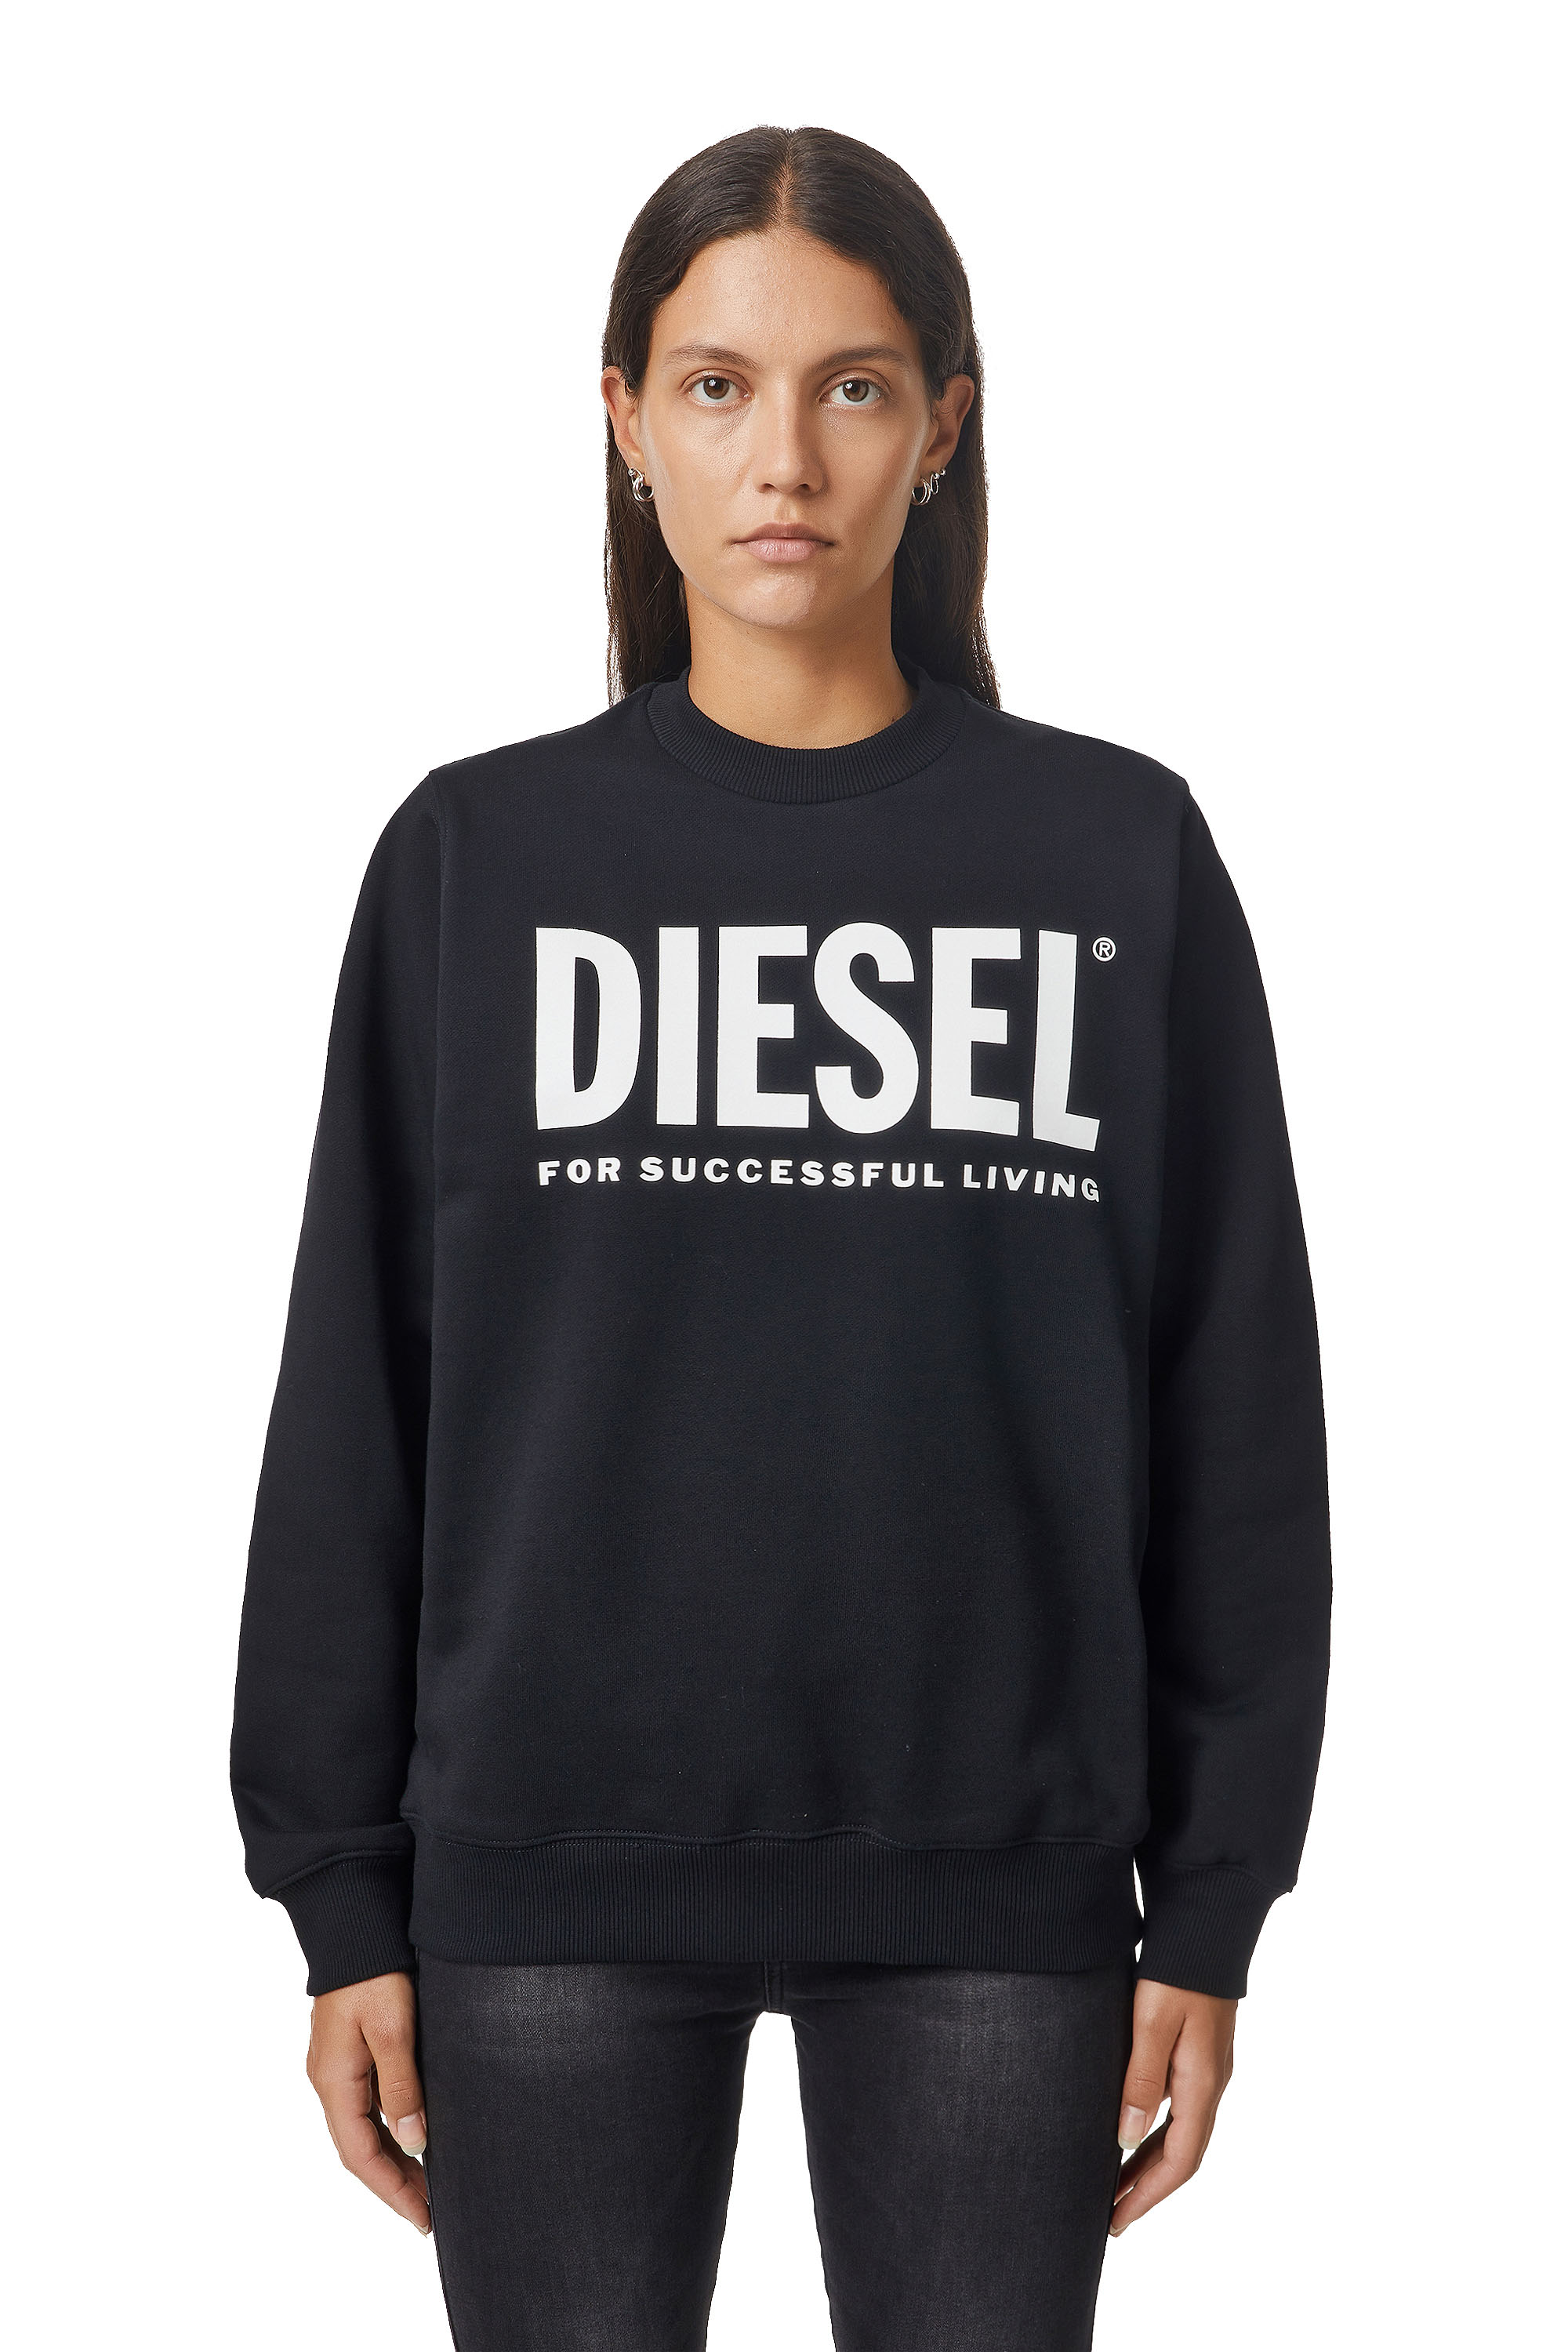 Diesel - F-ANG,  - Sweaters - Image 1